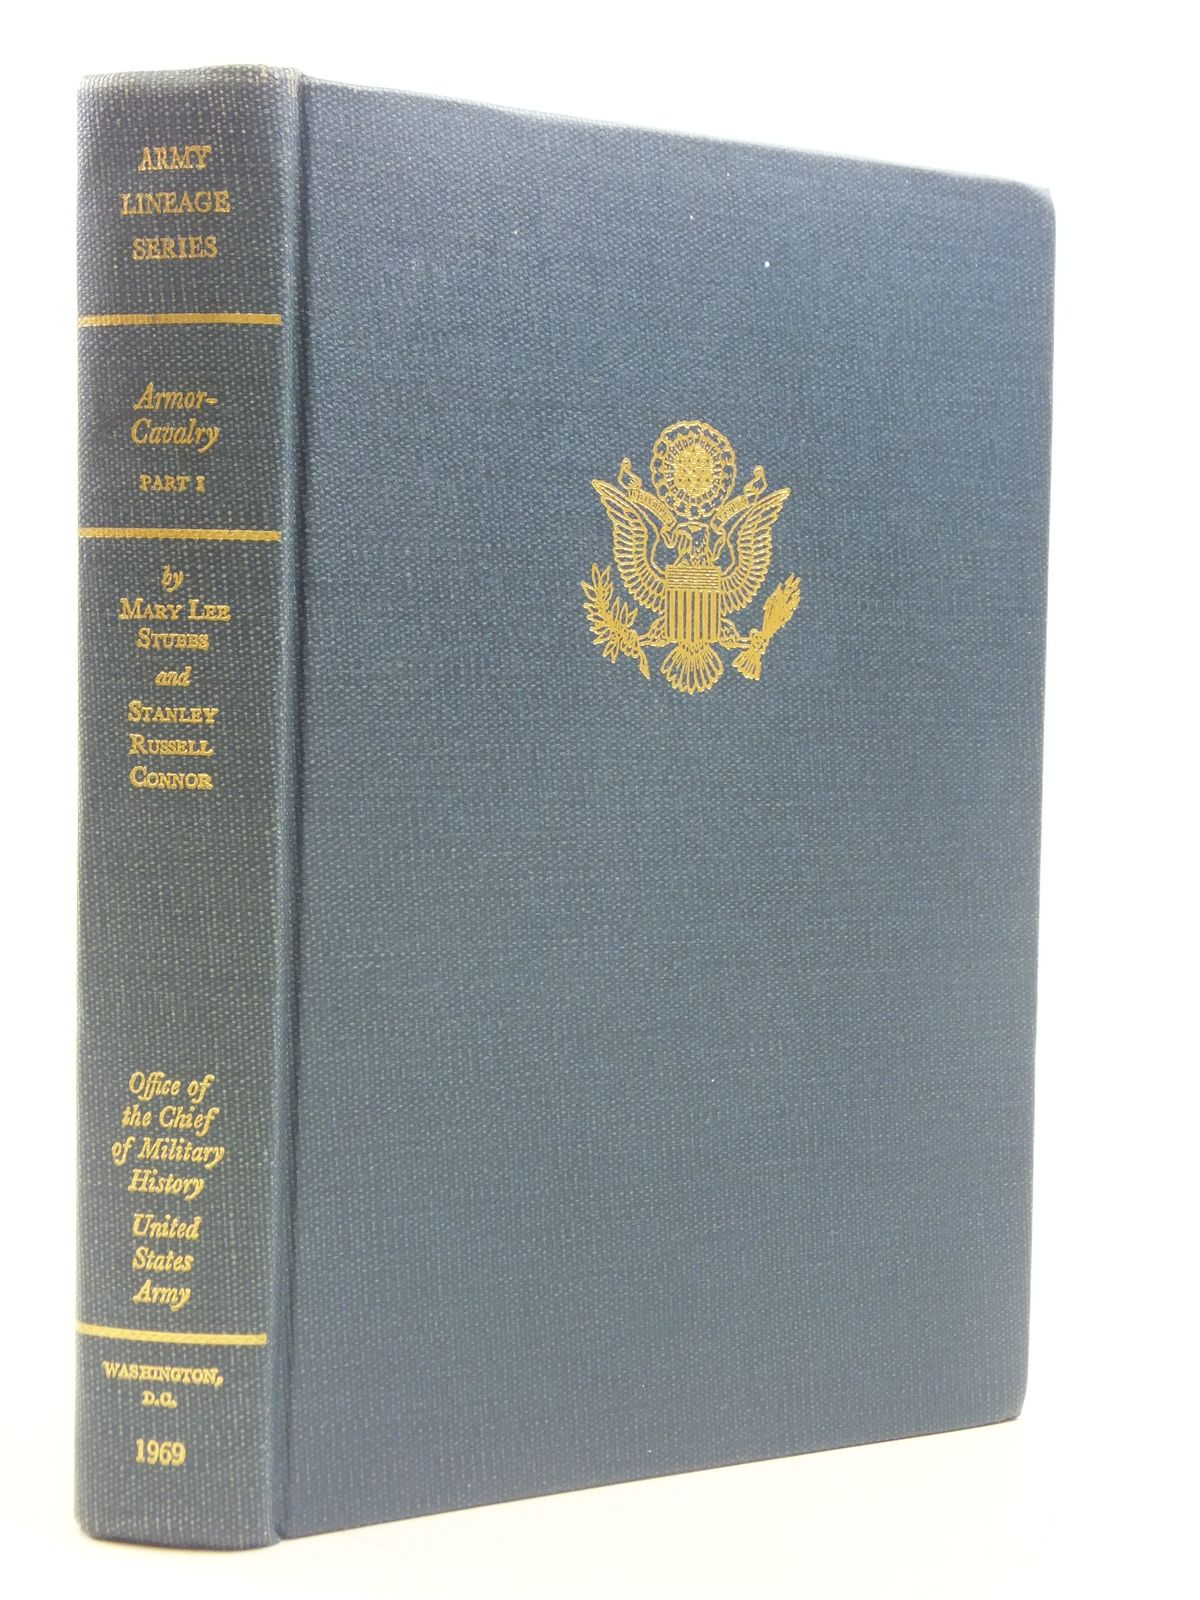 Photo of ARMOR-CAVLARY PART 1 REGULAR ARMY AND ARMY RESERVE written by Stubbs, Mary Lee<br />Connor, Stanley Russell published by Office Of The Chief Of Military History United States Army (STOCK CODE: 1605321)  for sale by Stella & Rose's Books